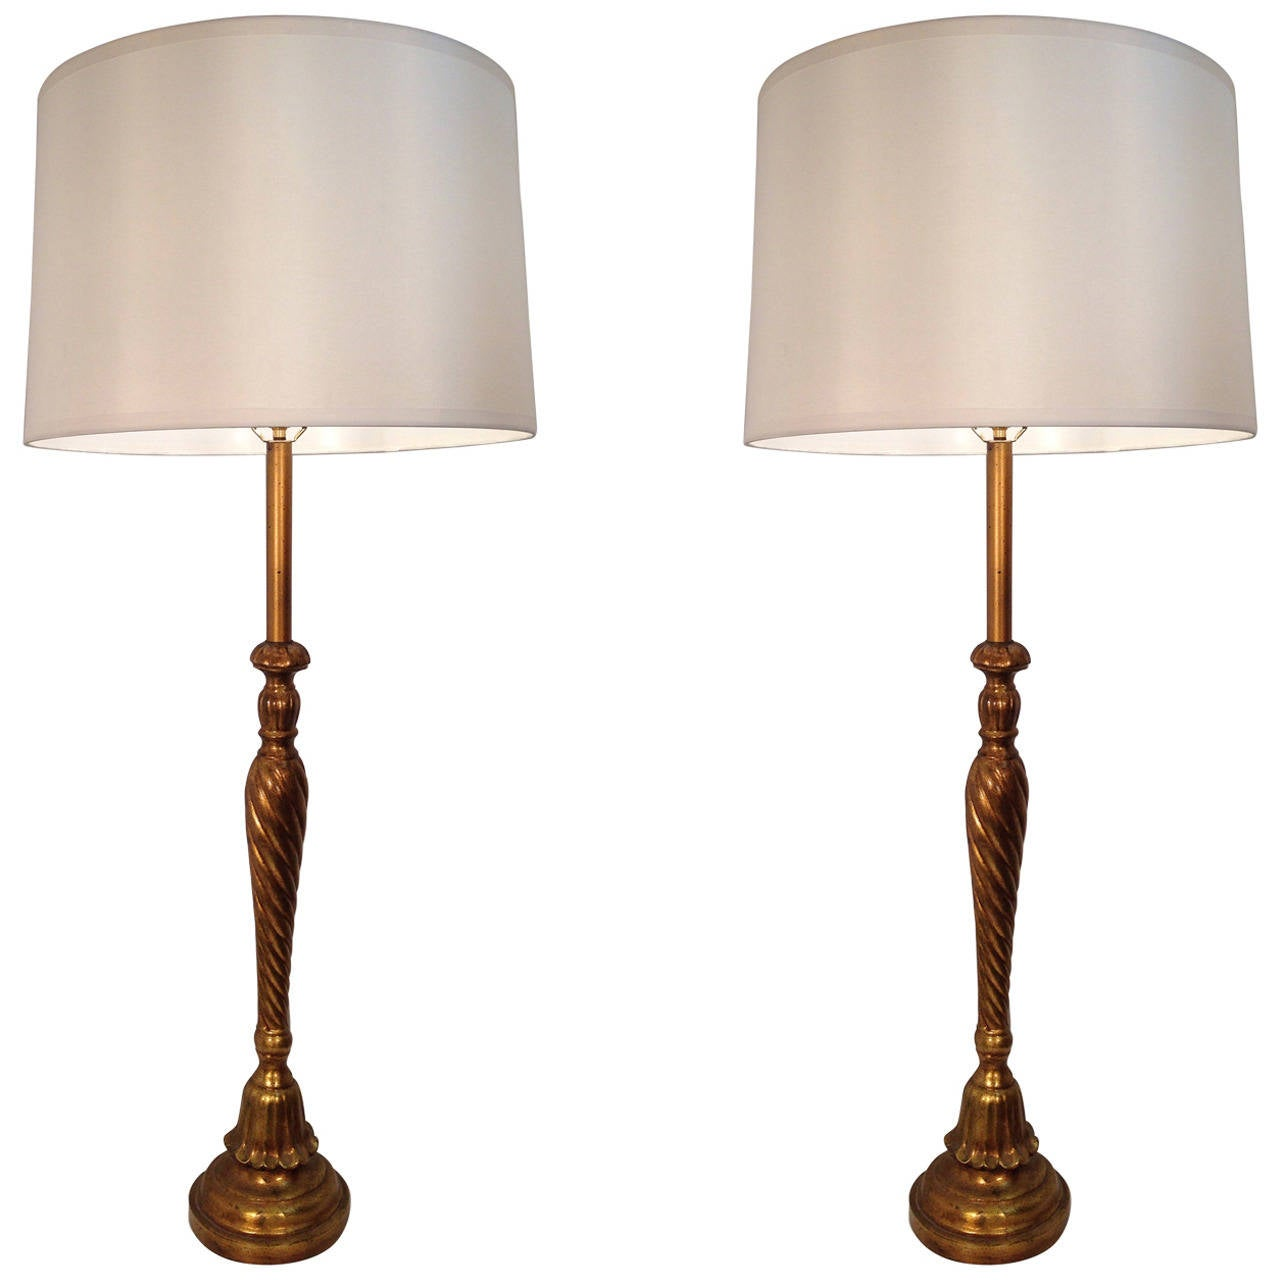 handmade pair of tall table lamps by maitland